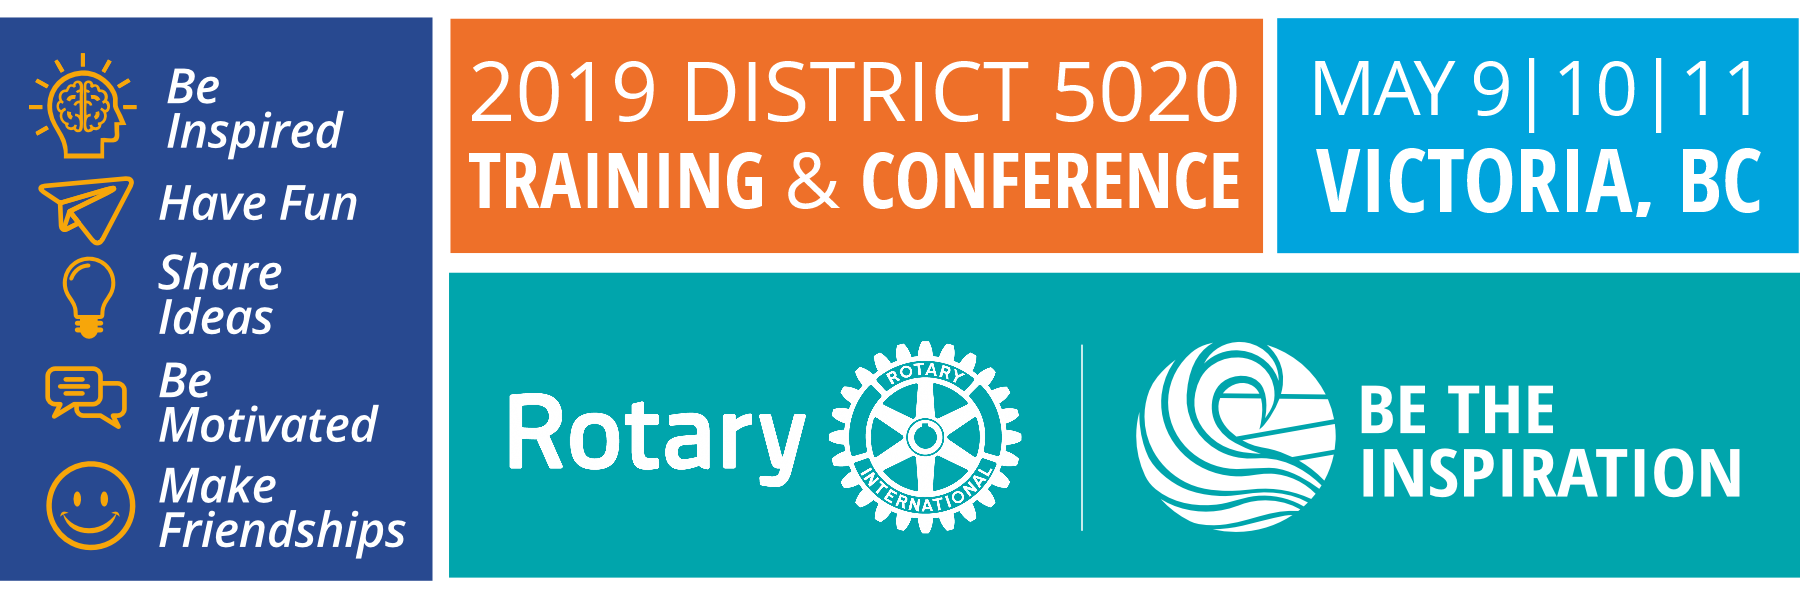 Event Overview | District 5020